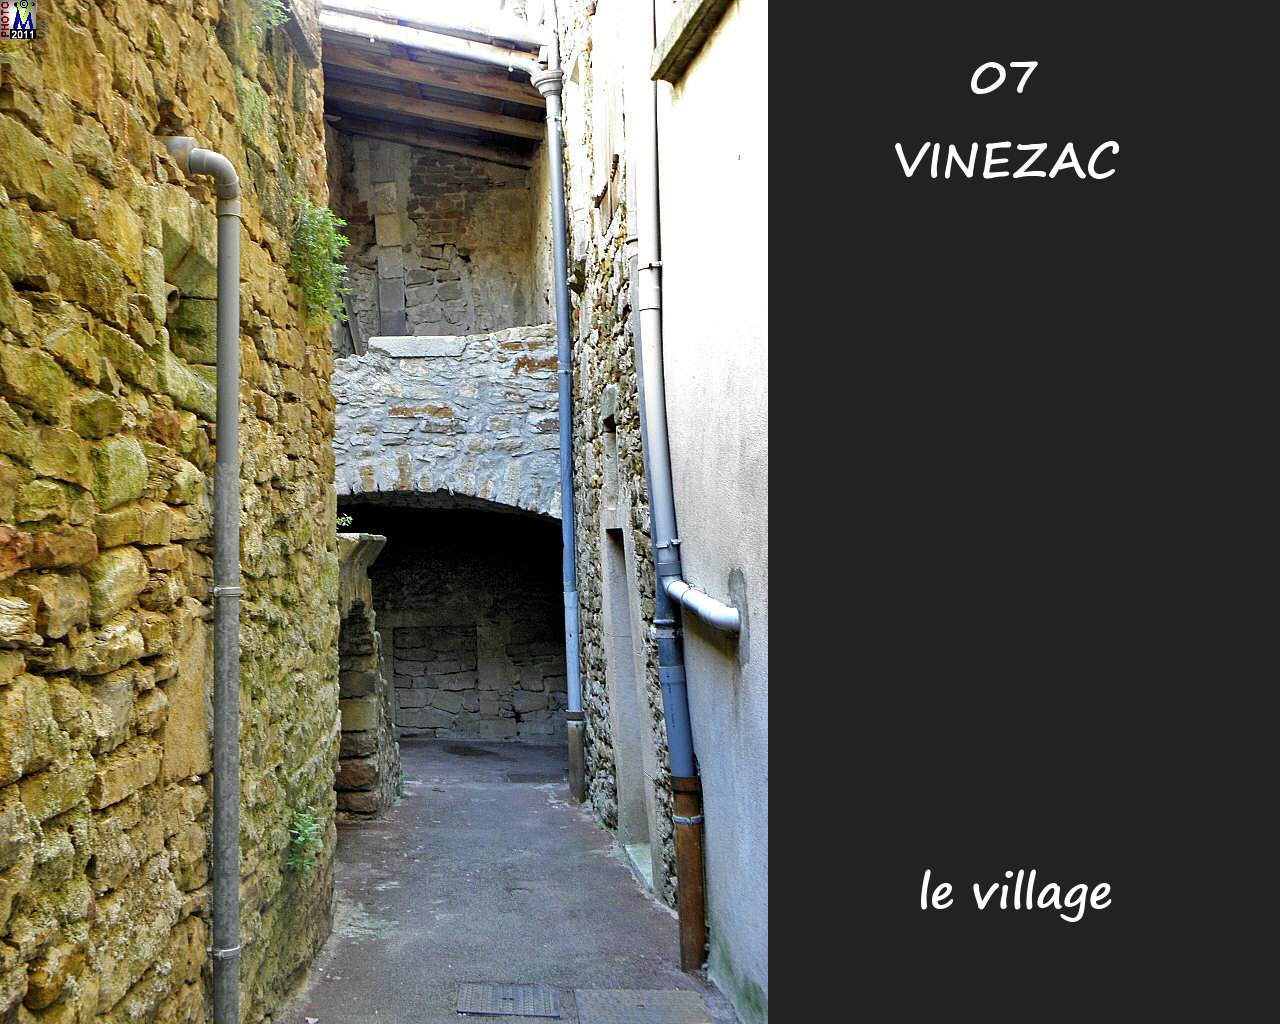 07VINEZAC_village_132.jpg